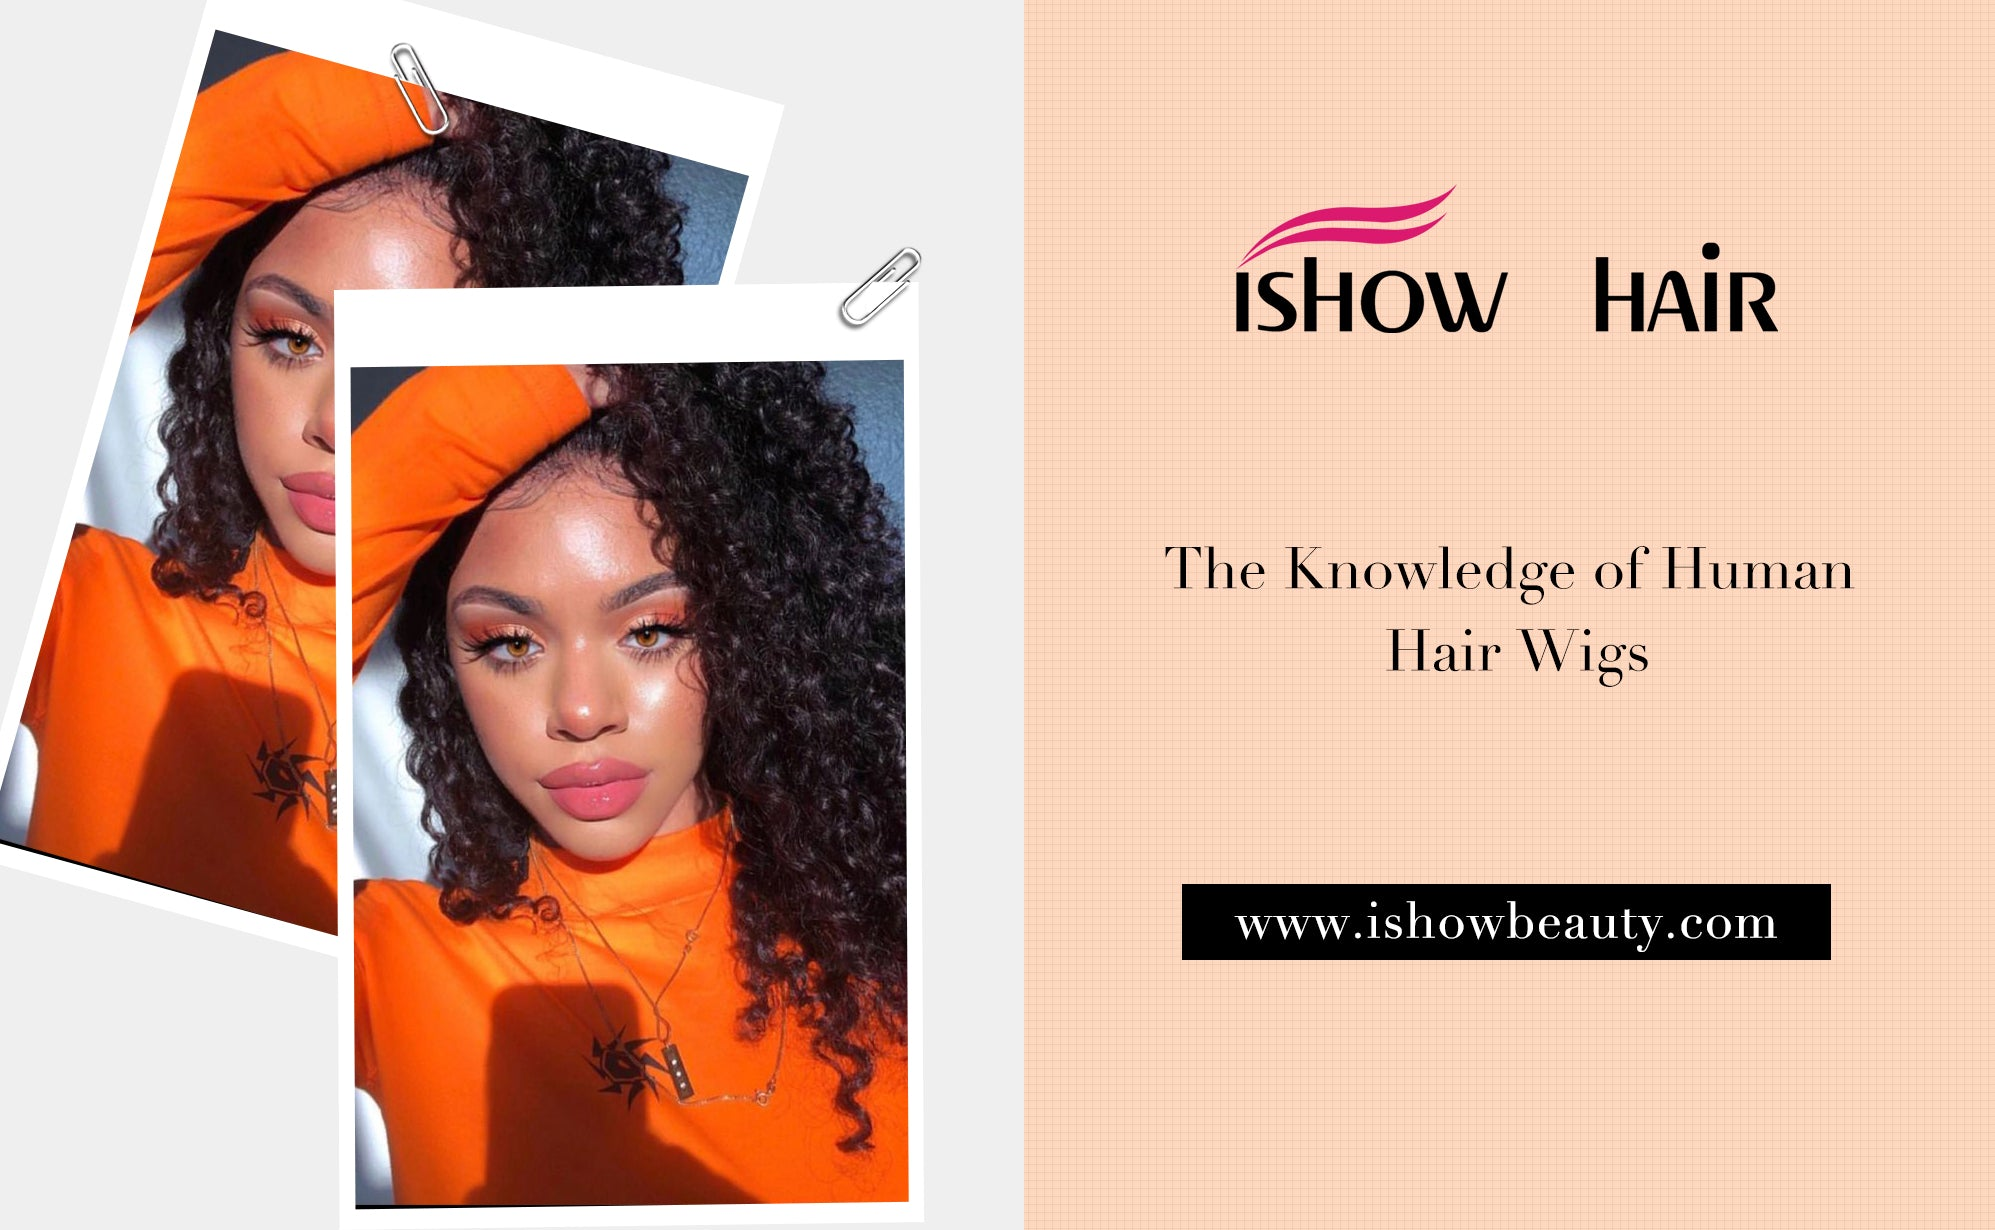 The Knowledge of Human Hair Wigs